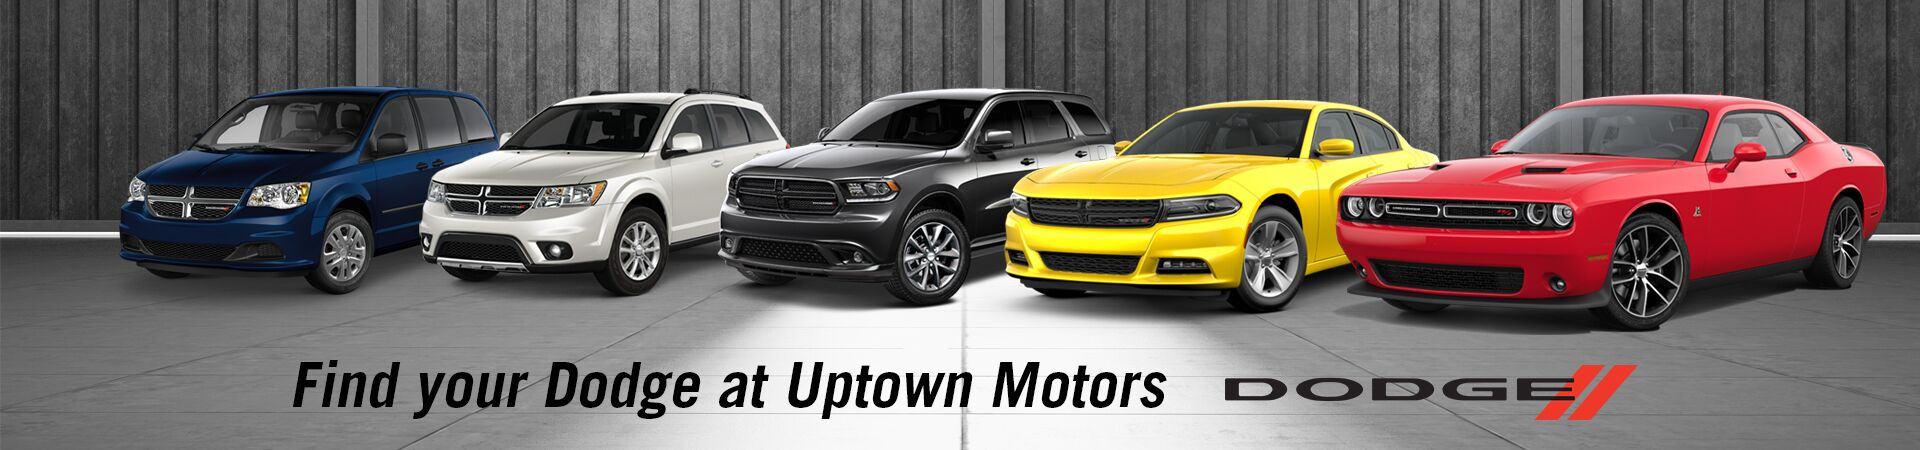 Uptown Motors Dealerships Milwaukee and Slinger WI | Used ...